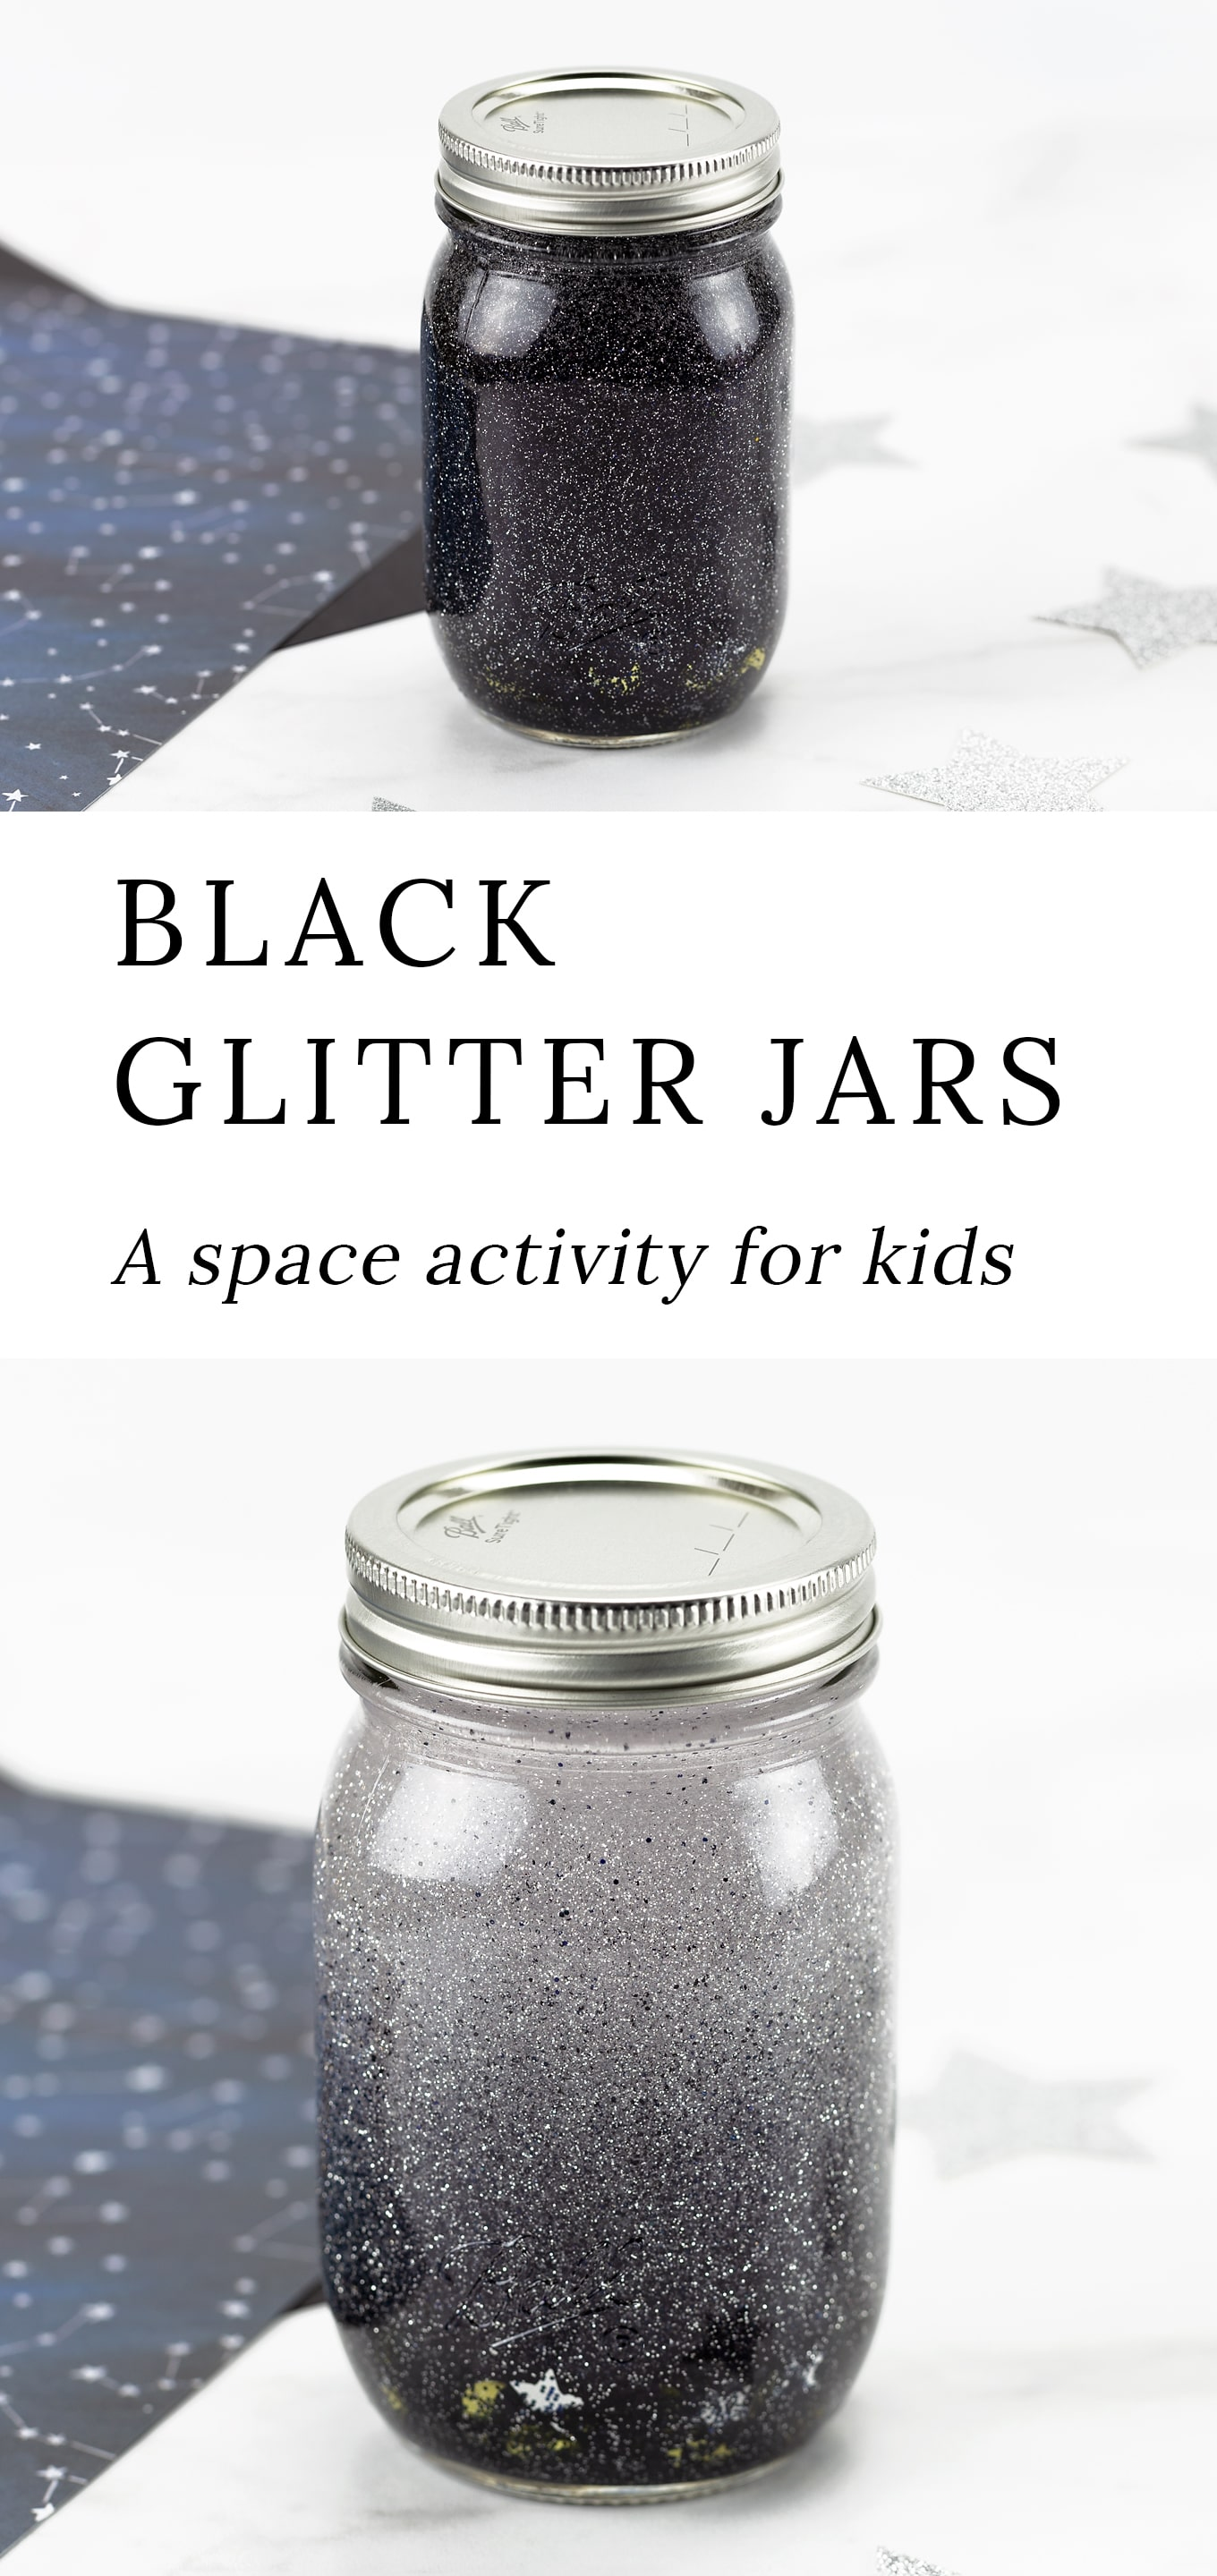 Follow along with our easy step-by-step directions and video tutorial so you can learn how to make your own mesmerizing Black Glitter Jars! Simple and fun for kids! via @firefliesandmudpies